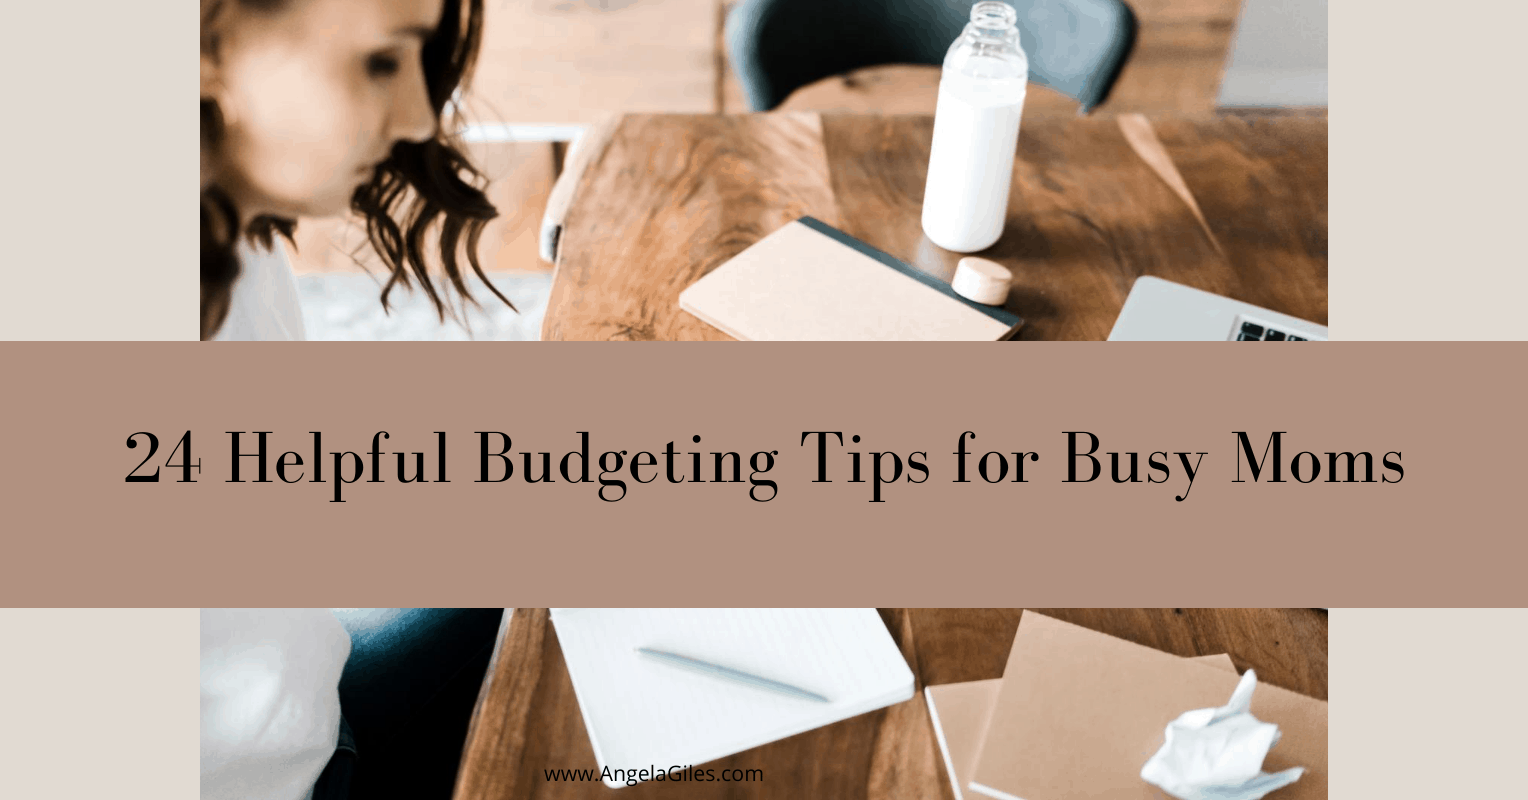 24 Helpful Budgeting Tips for Busy Moms